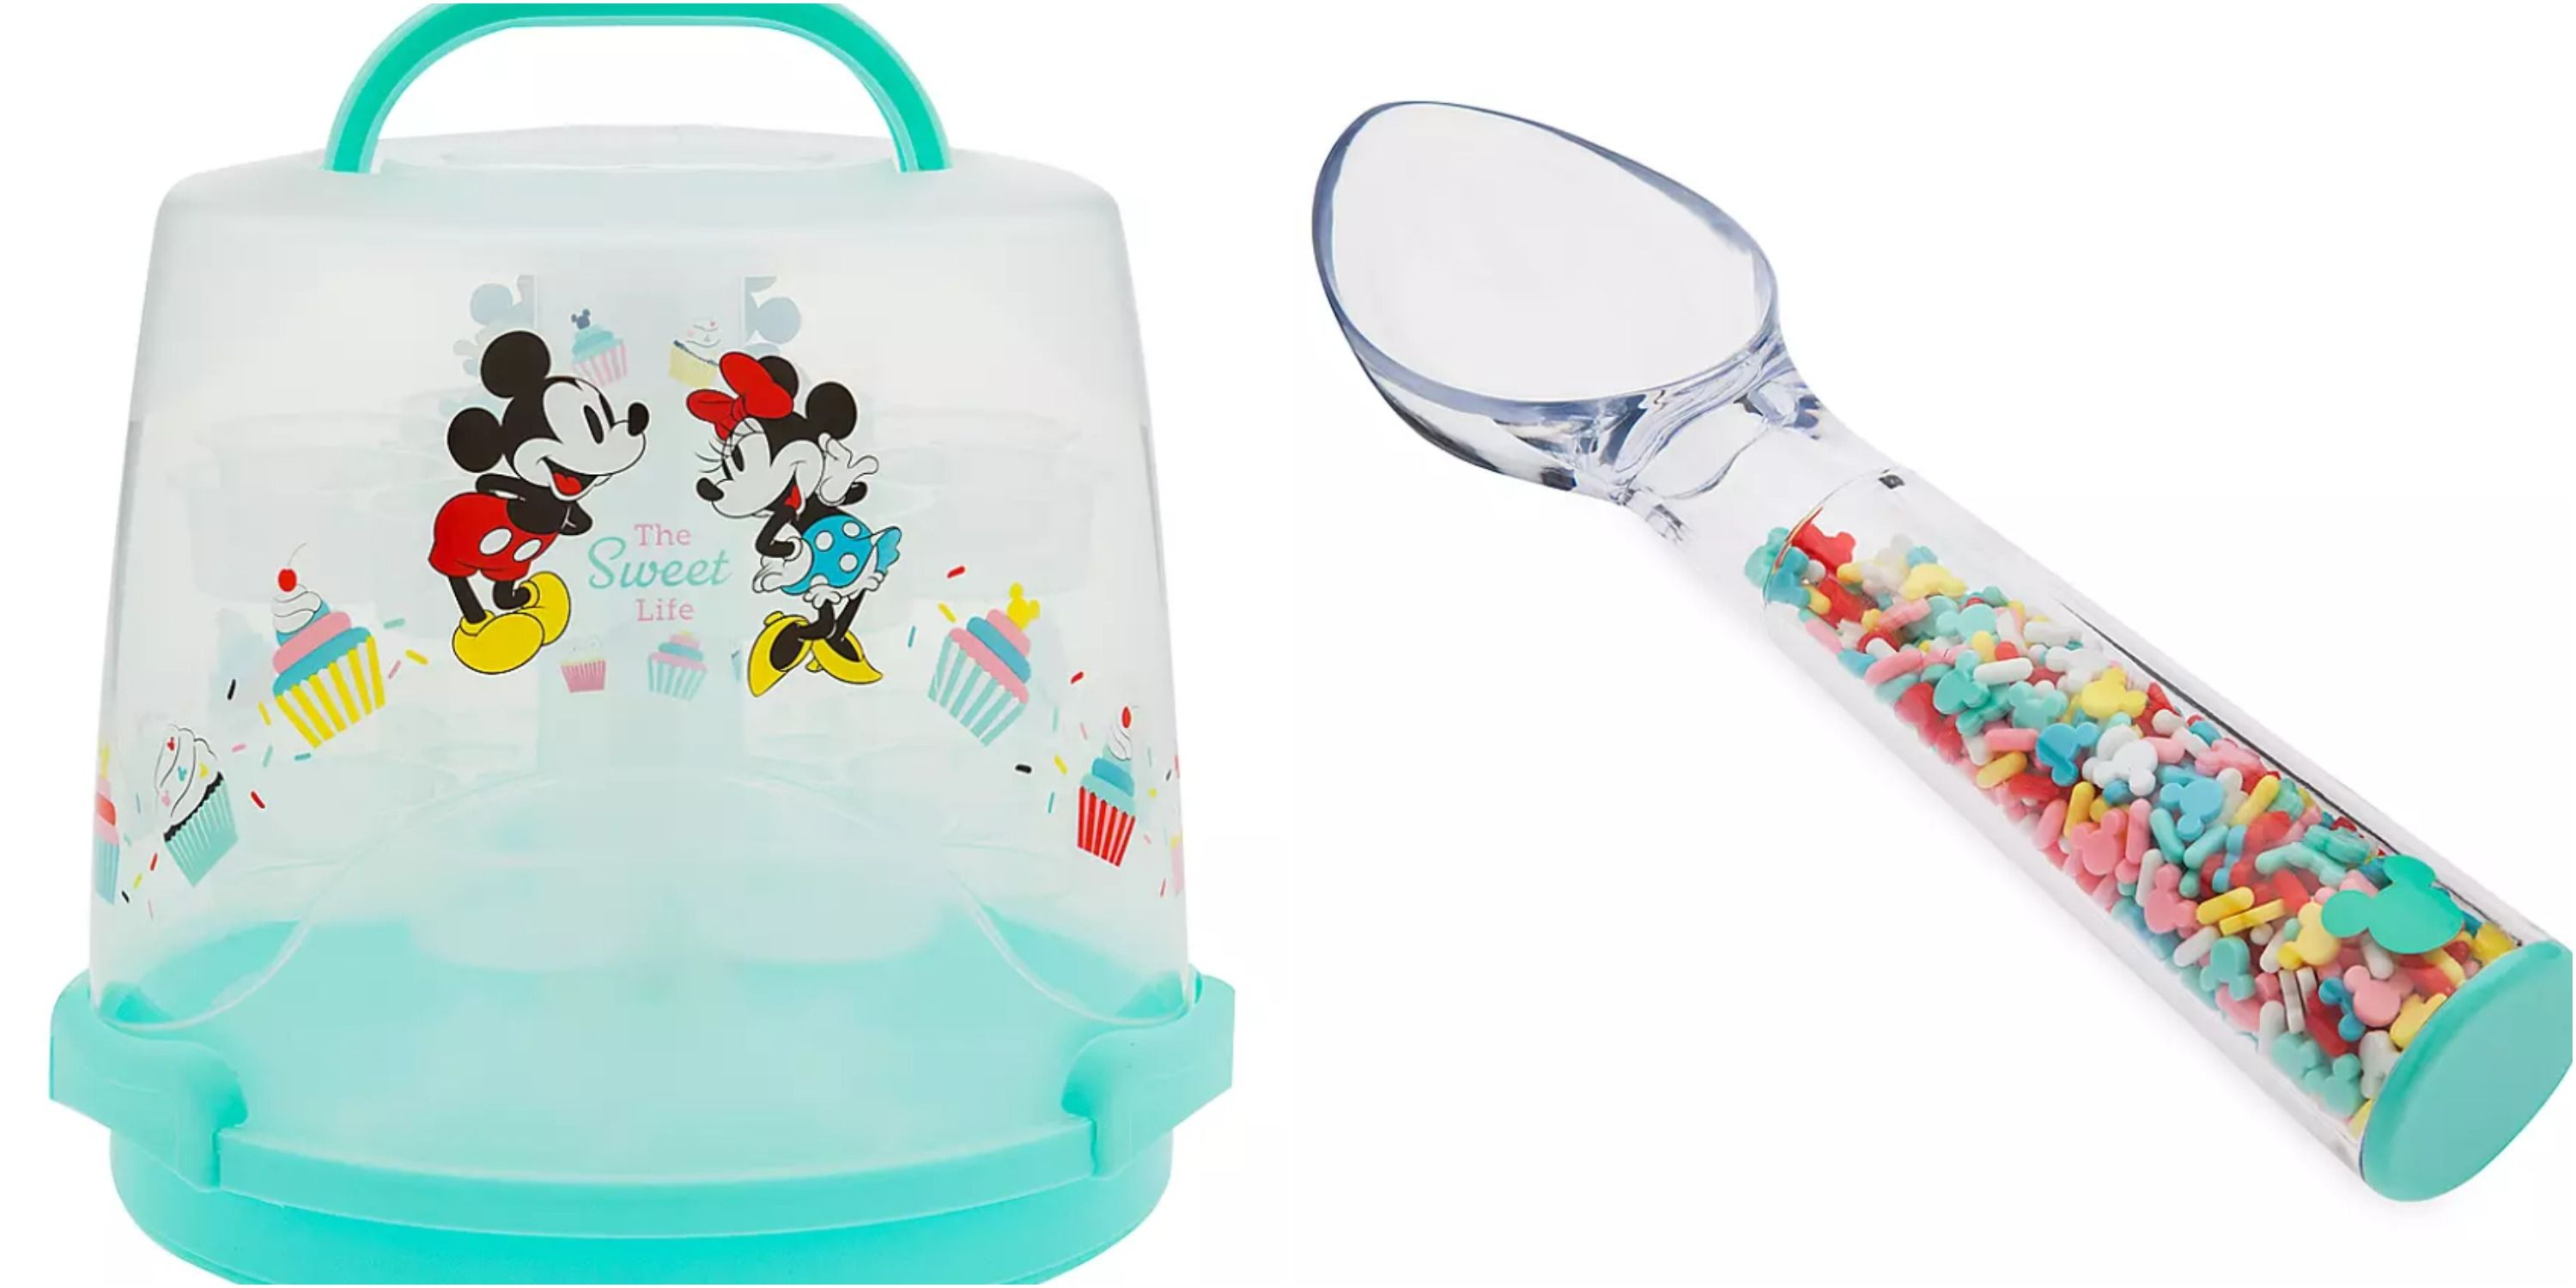 Disney Released The Cutest Kitchen Items Including Plates, Cake Holders, And Cups